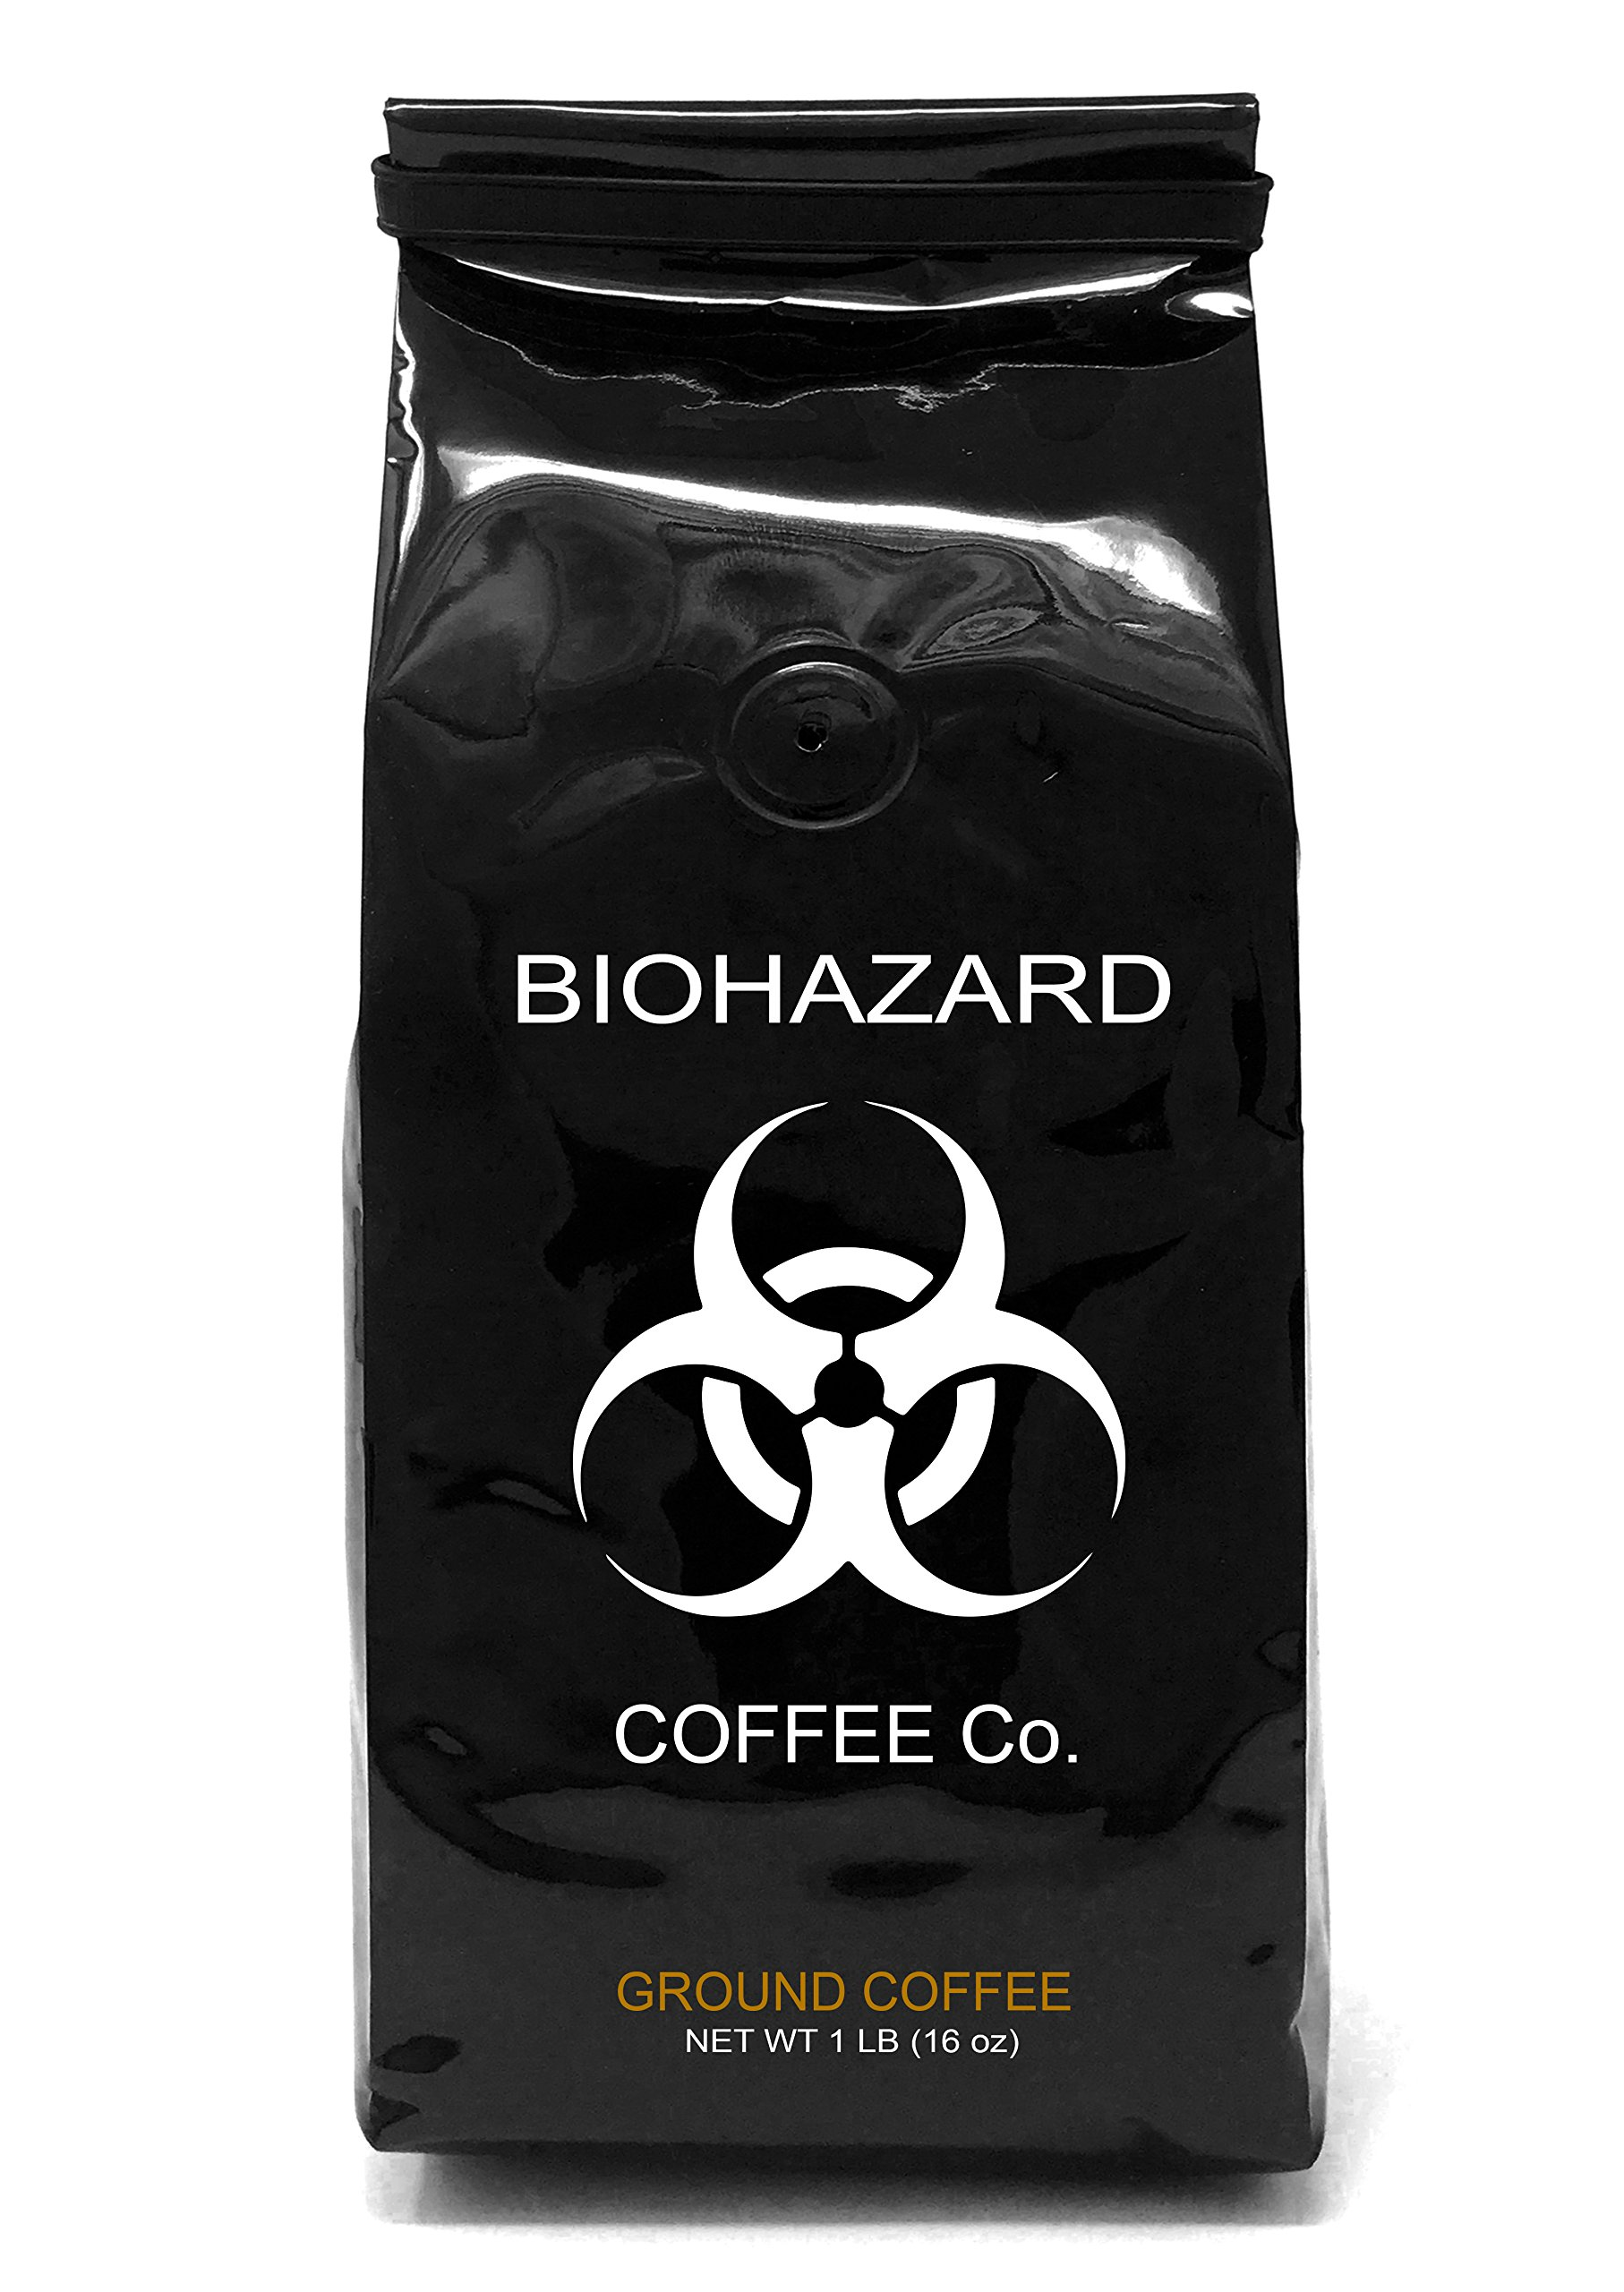 Biohazard Ground Coffee, The World's Strongest Coffee 928 mg Caffeine (1 LB)